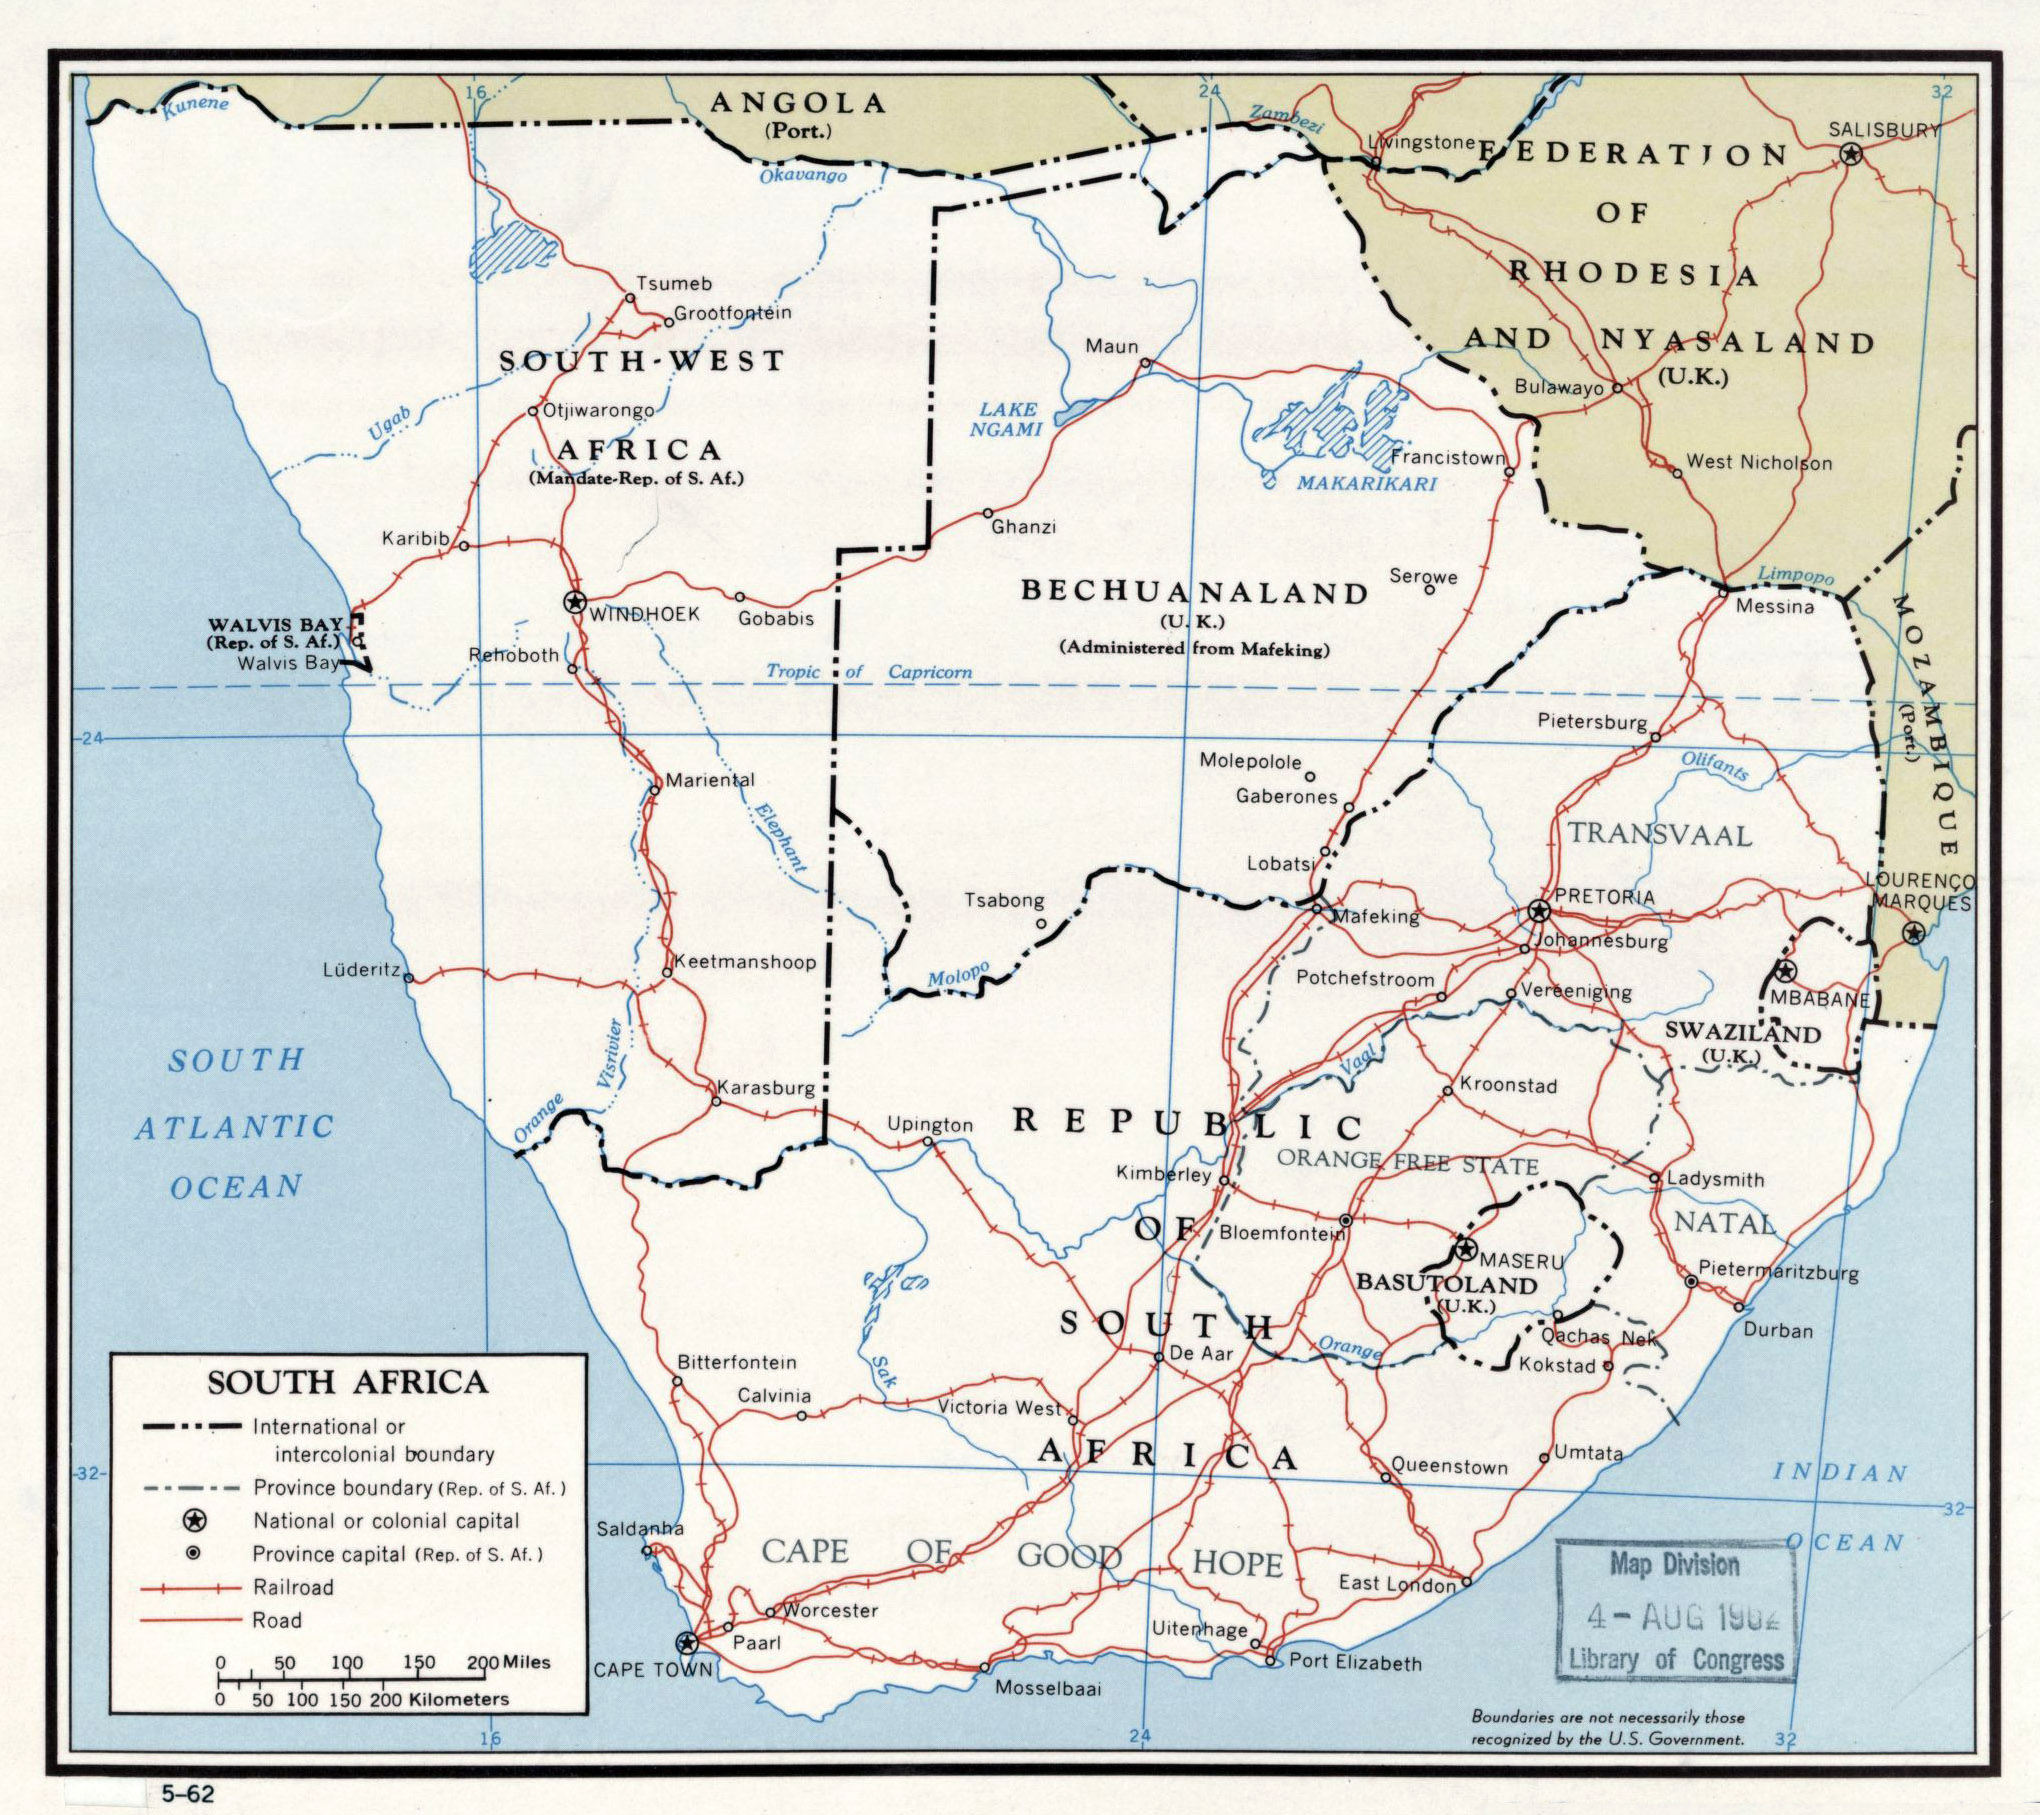 map of south africa roads Large Detailed Political Map Of South Africa With Roads And Major map of south africa roads